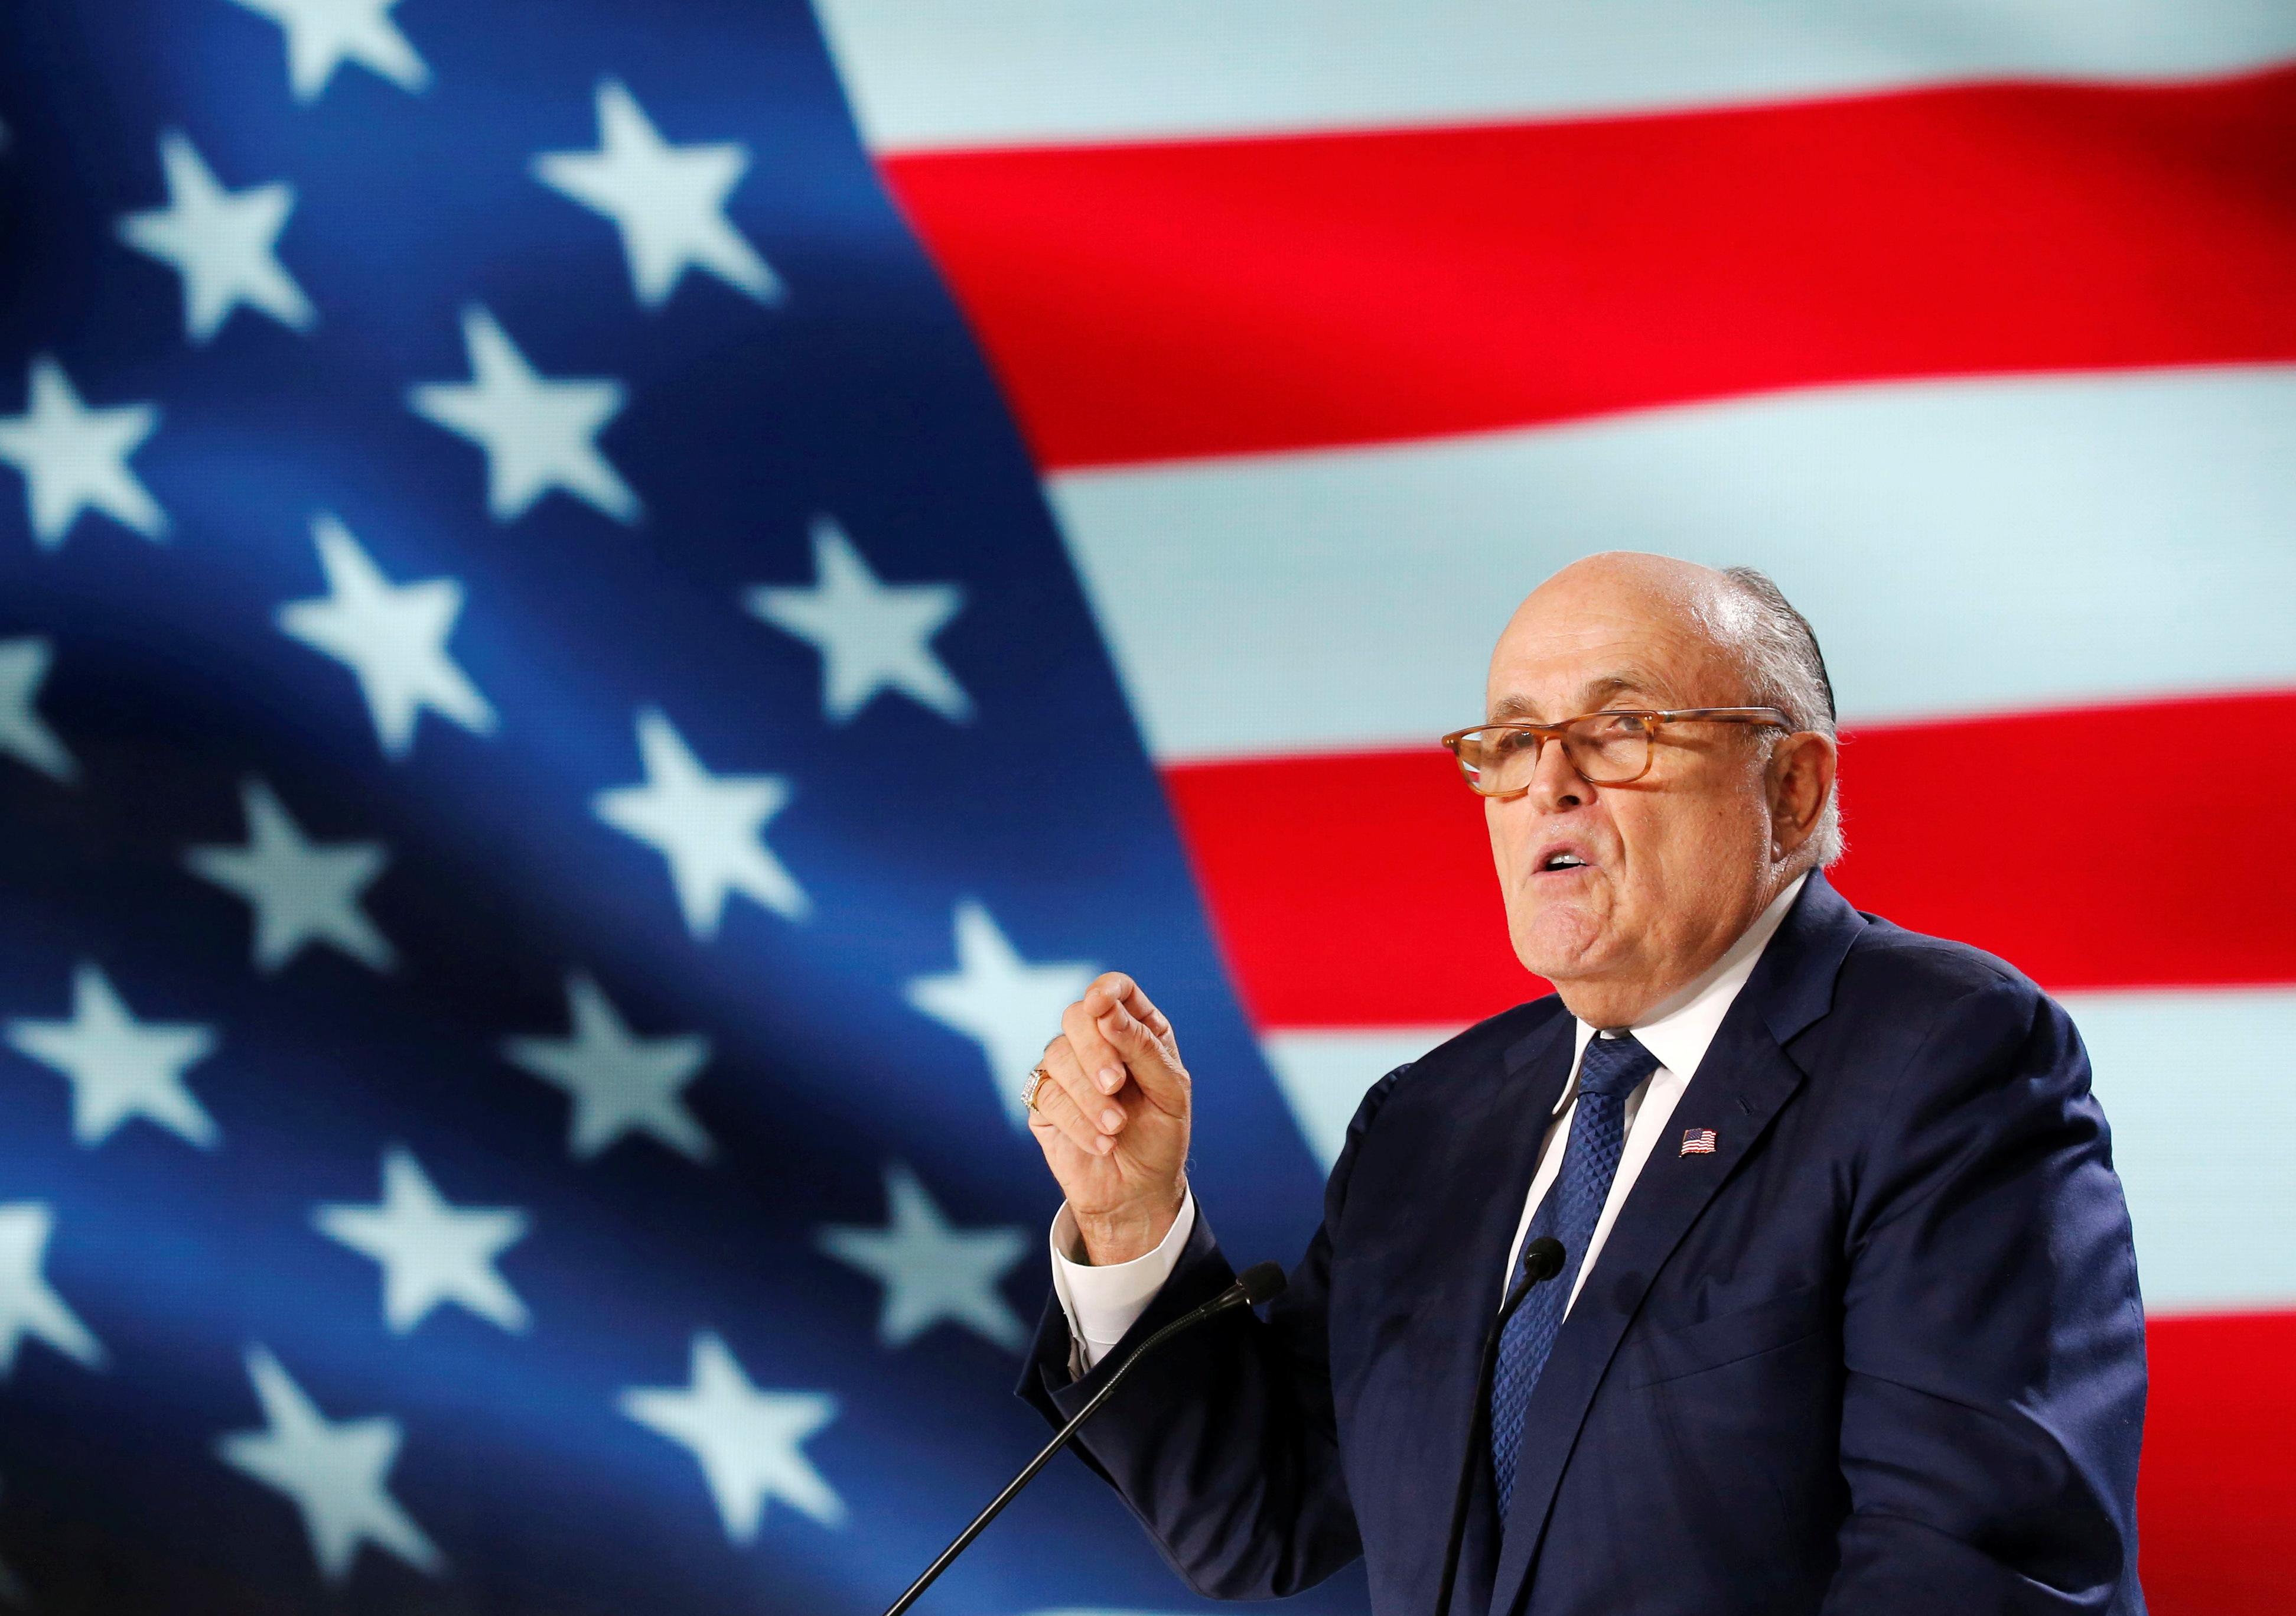 Rudy Giuliani, former Mayor of New York City, delivers his speech as he attends the National Council of Resistance of Iran (NCRI), meeting in Villepinte